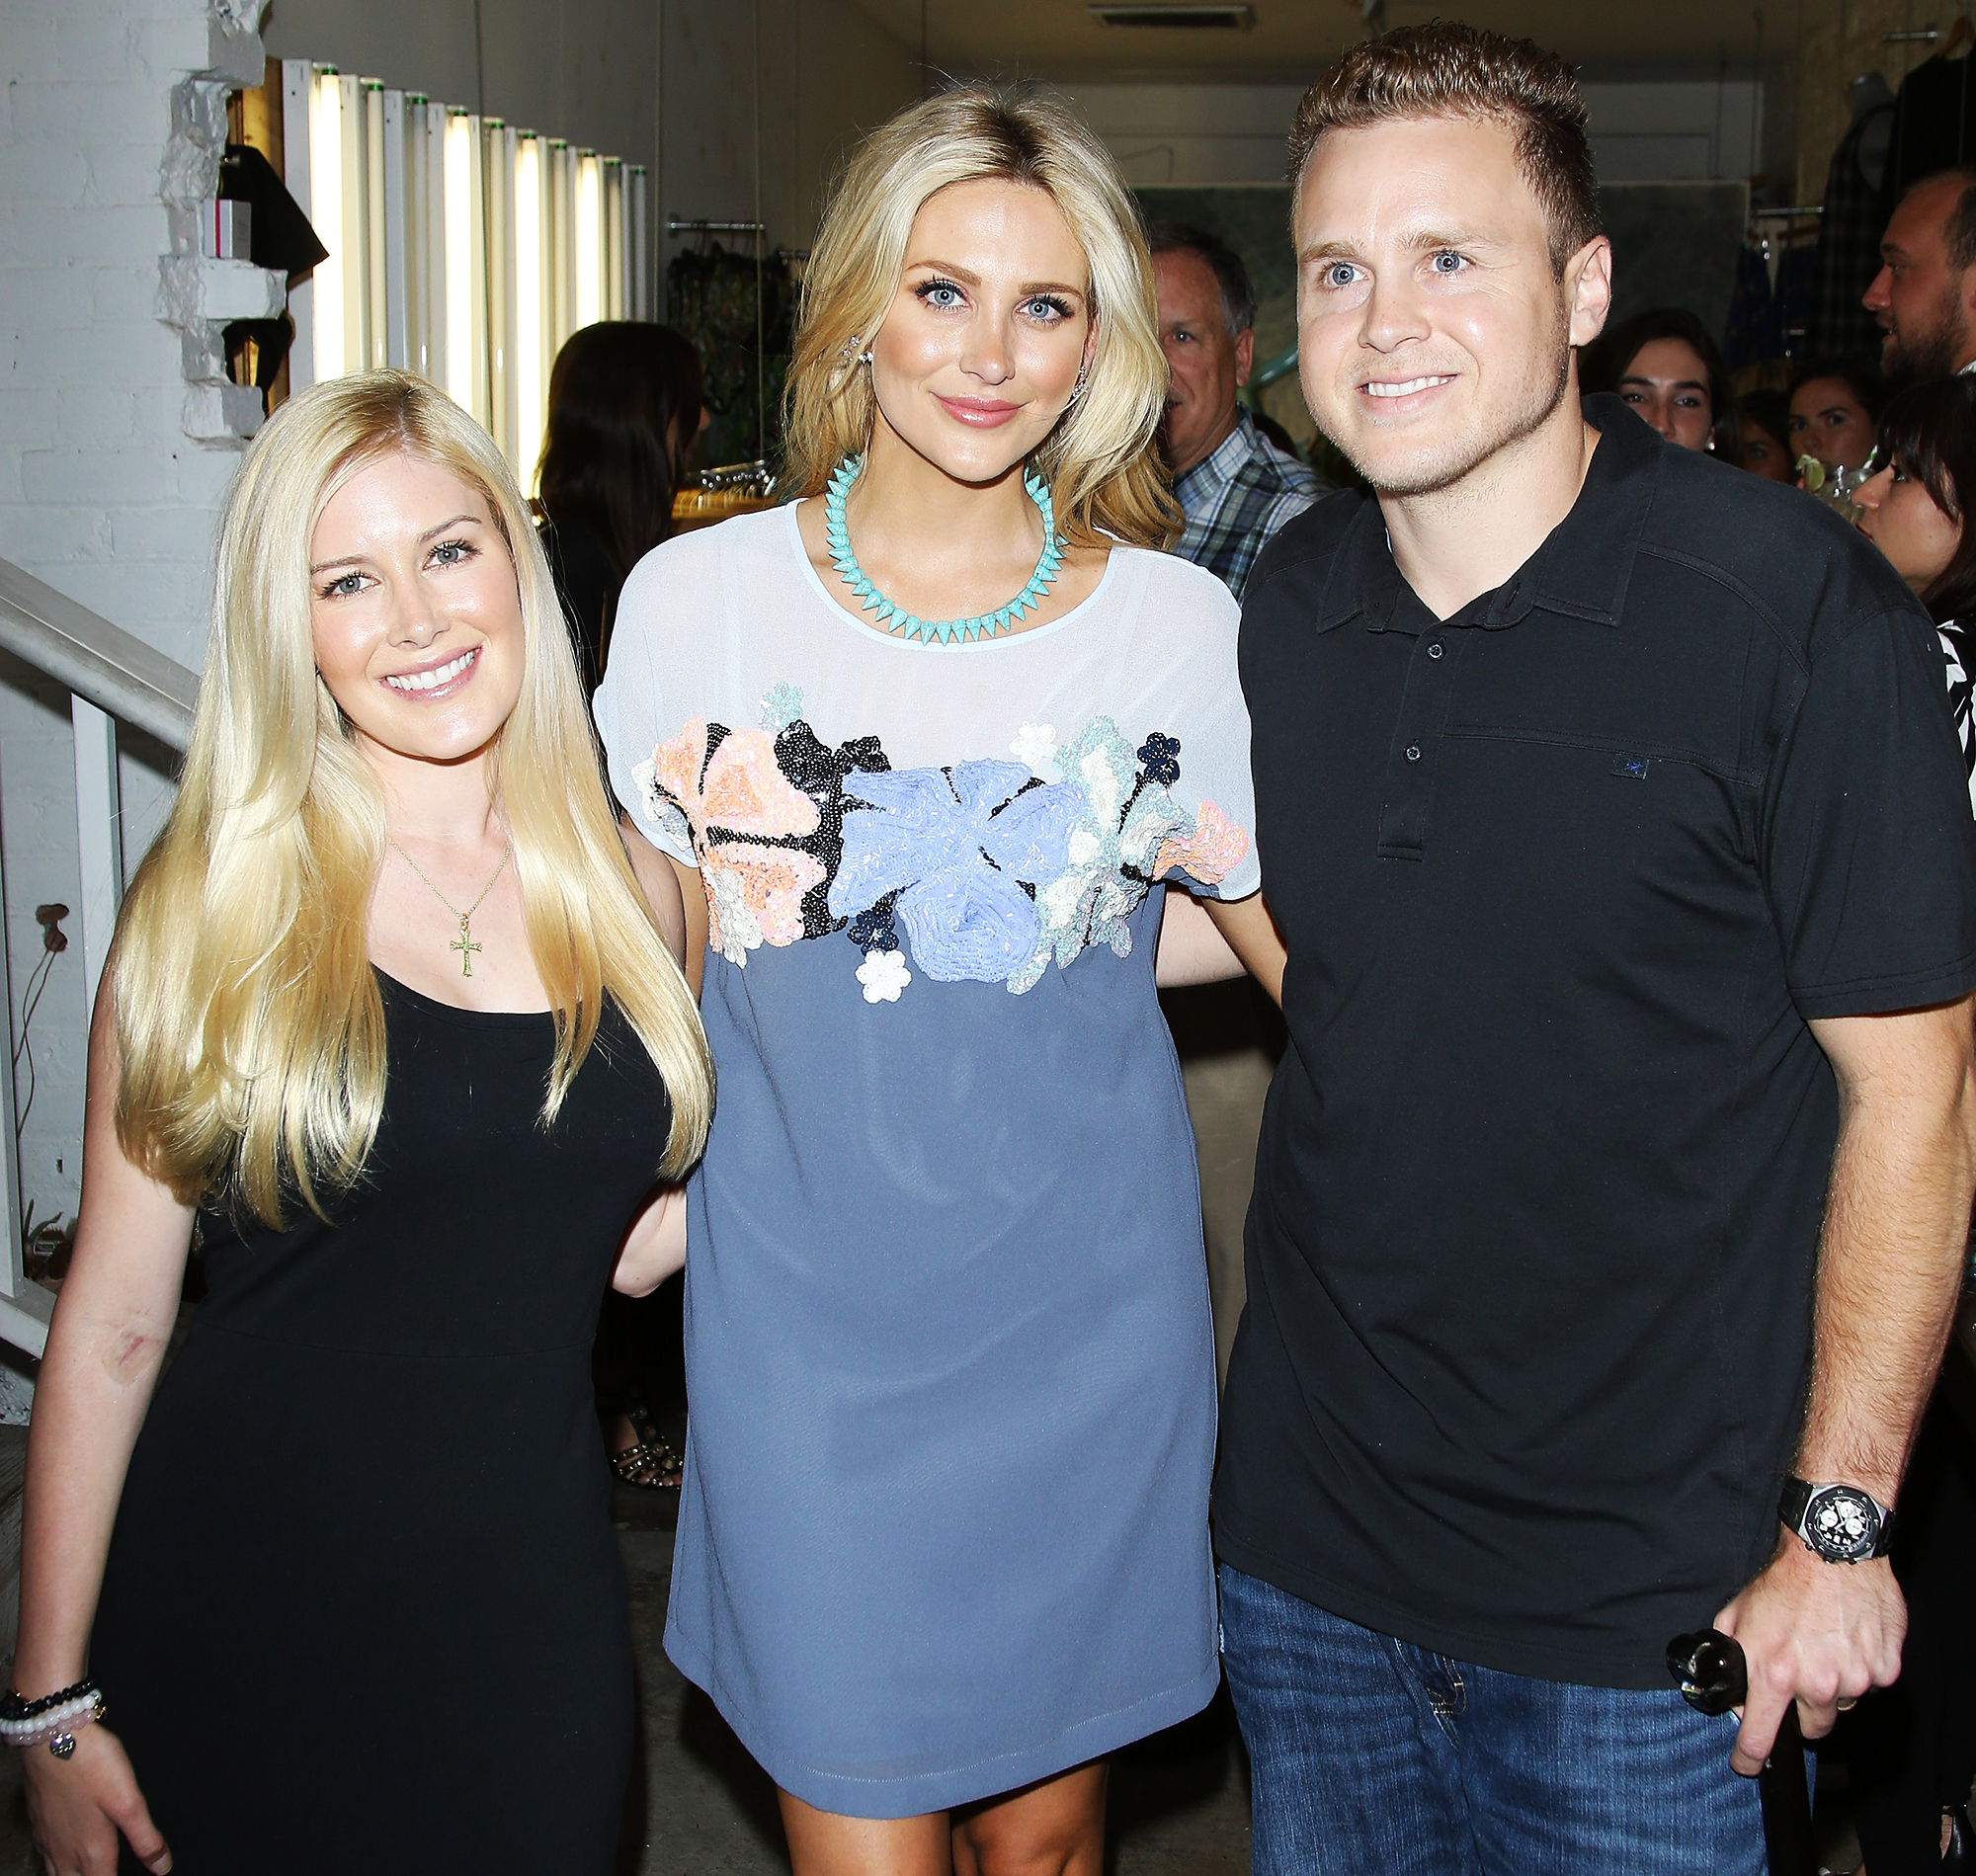 Stephanie-Pratt-Cries-Over-Cut-'The-Hills'-Scene-With-Brother-Spencer,-Heidi-Montag-2